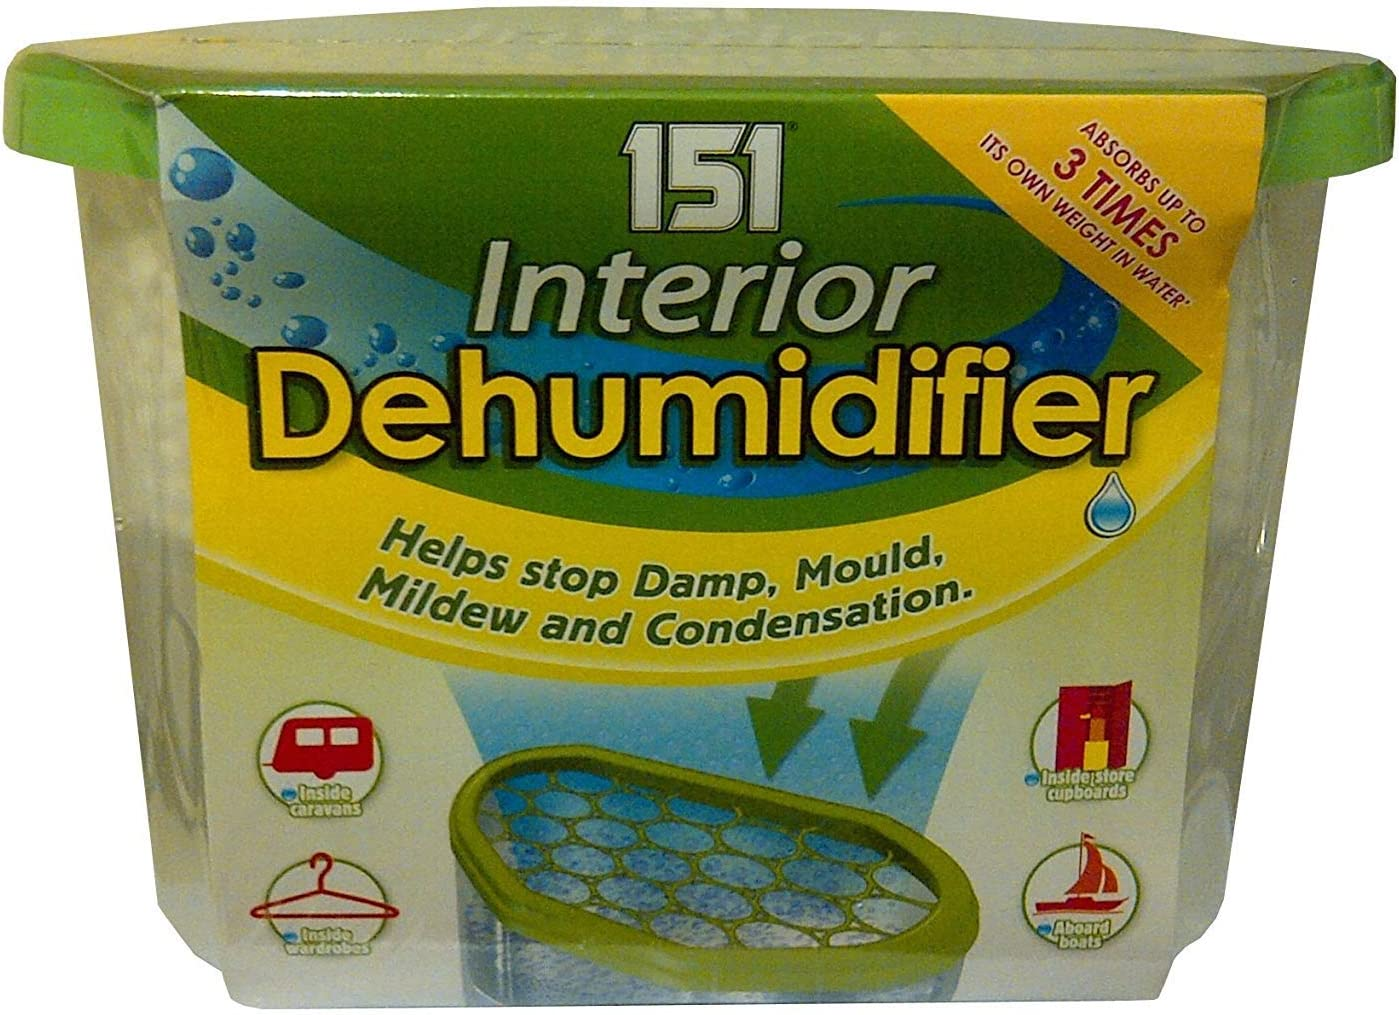 2 X 18 x Interior DEHUMIDIFIER 151 Set of 18 Brand New De